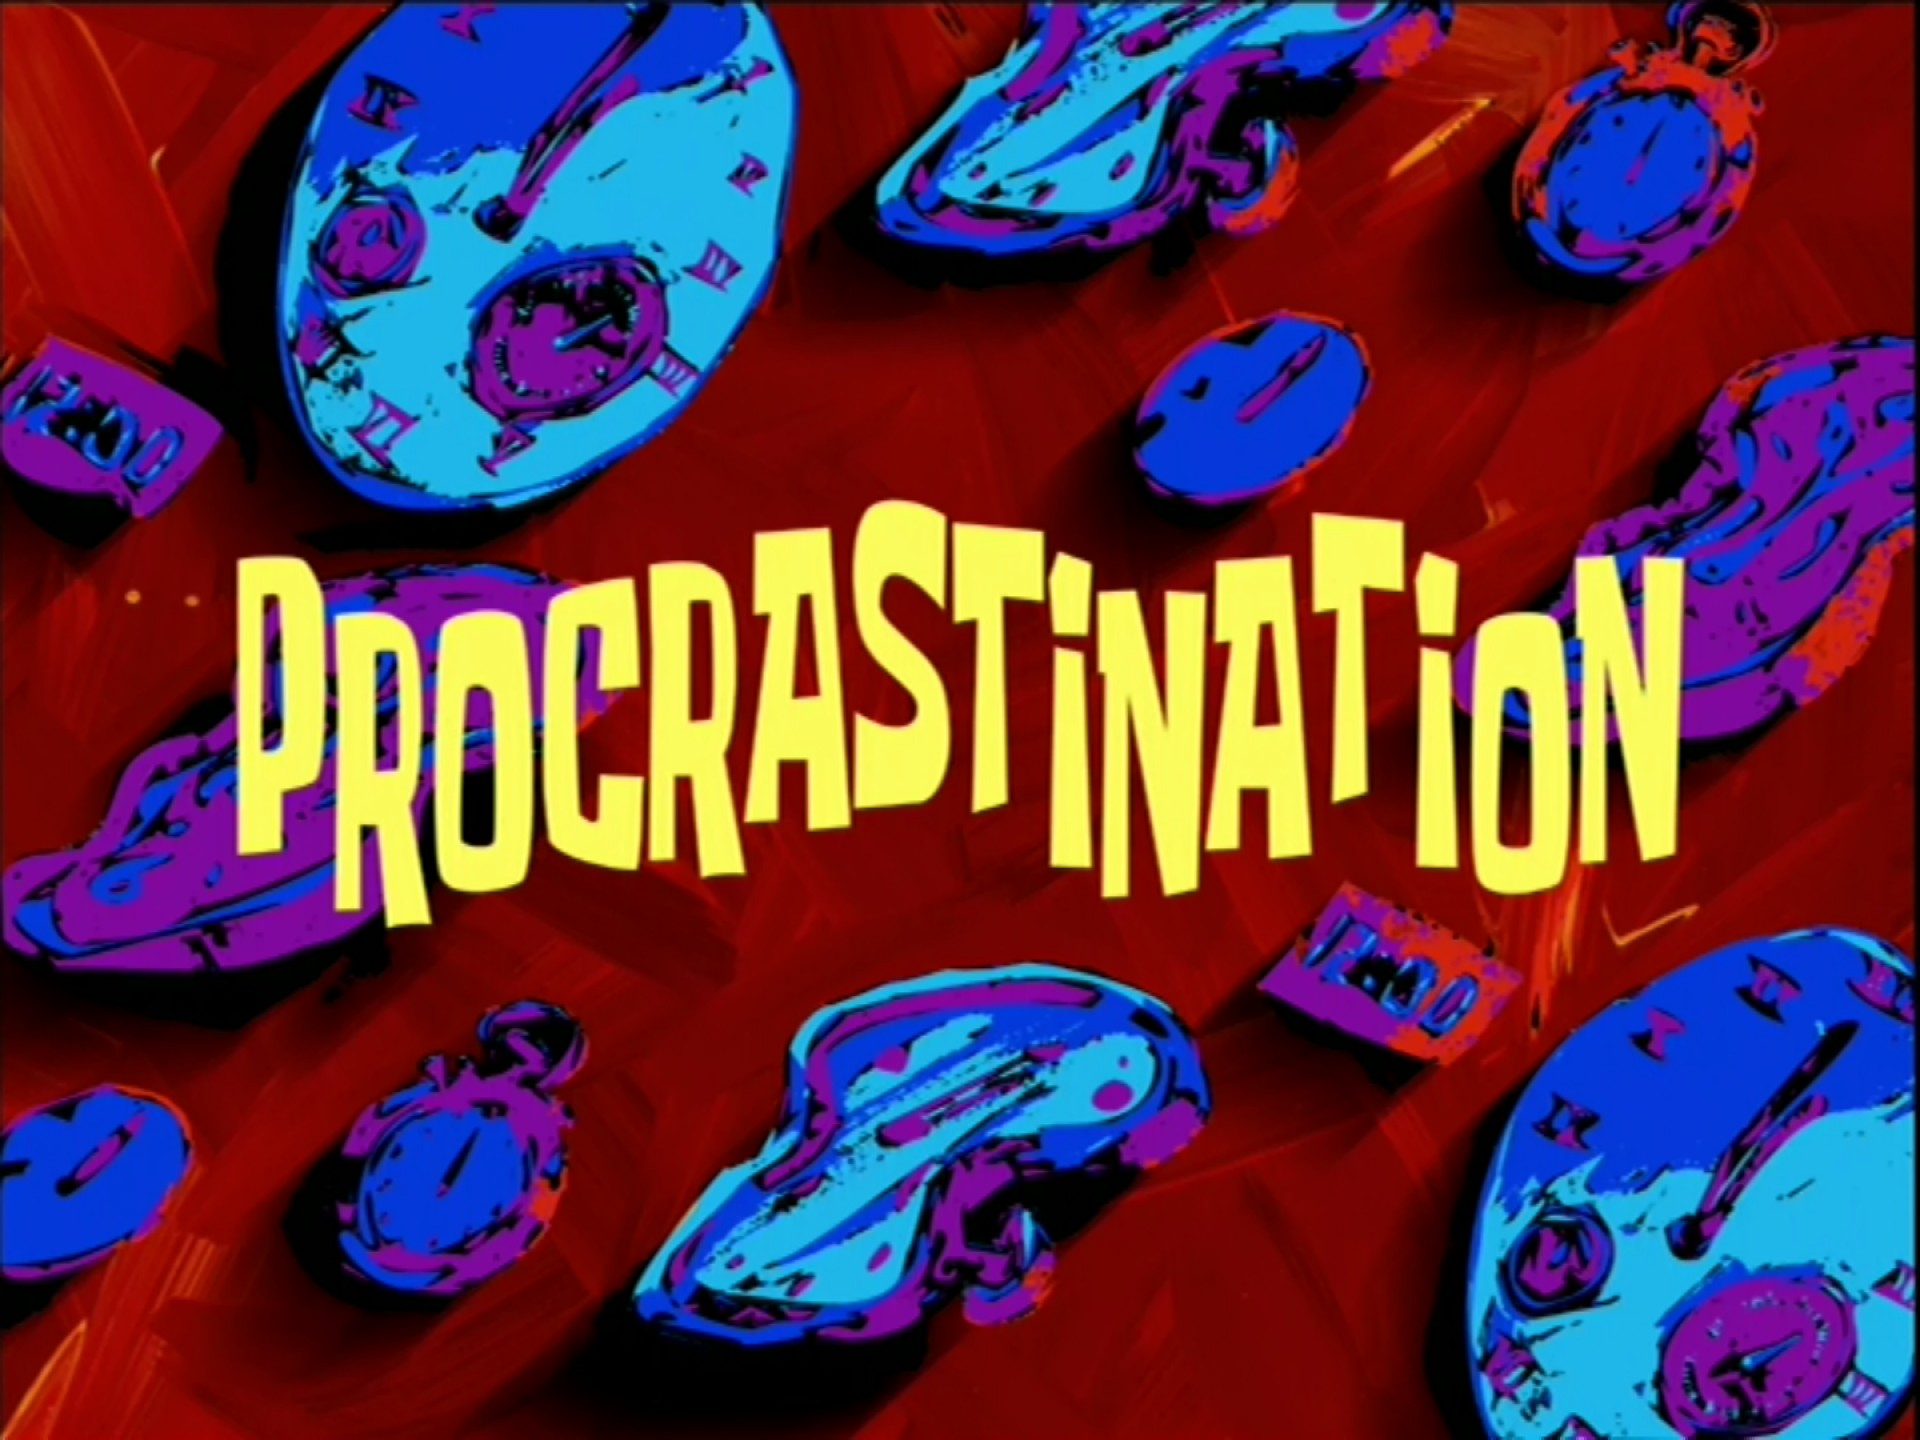 009 Procrastinationtranscript Encyclopedia Spongebobia Fandom Spongebob Writing Essay The Latestcb201806220 Gif Font For Hours Meme Rap Surprising Deleted Scene House 1920